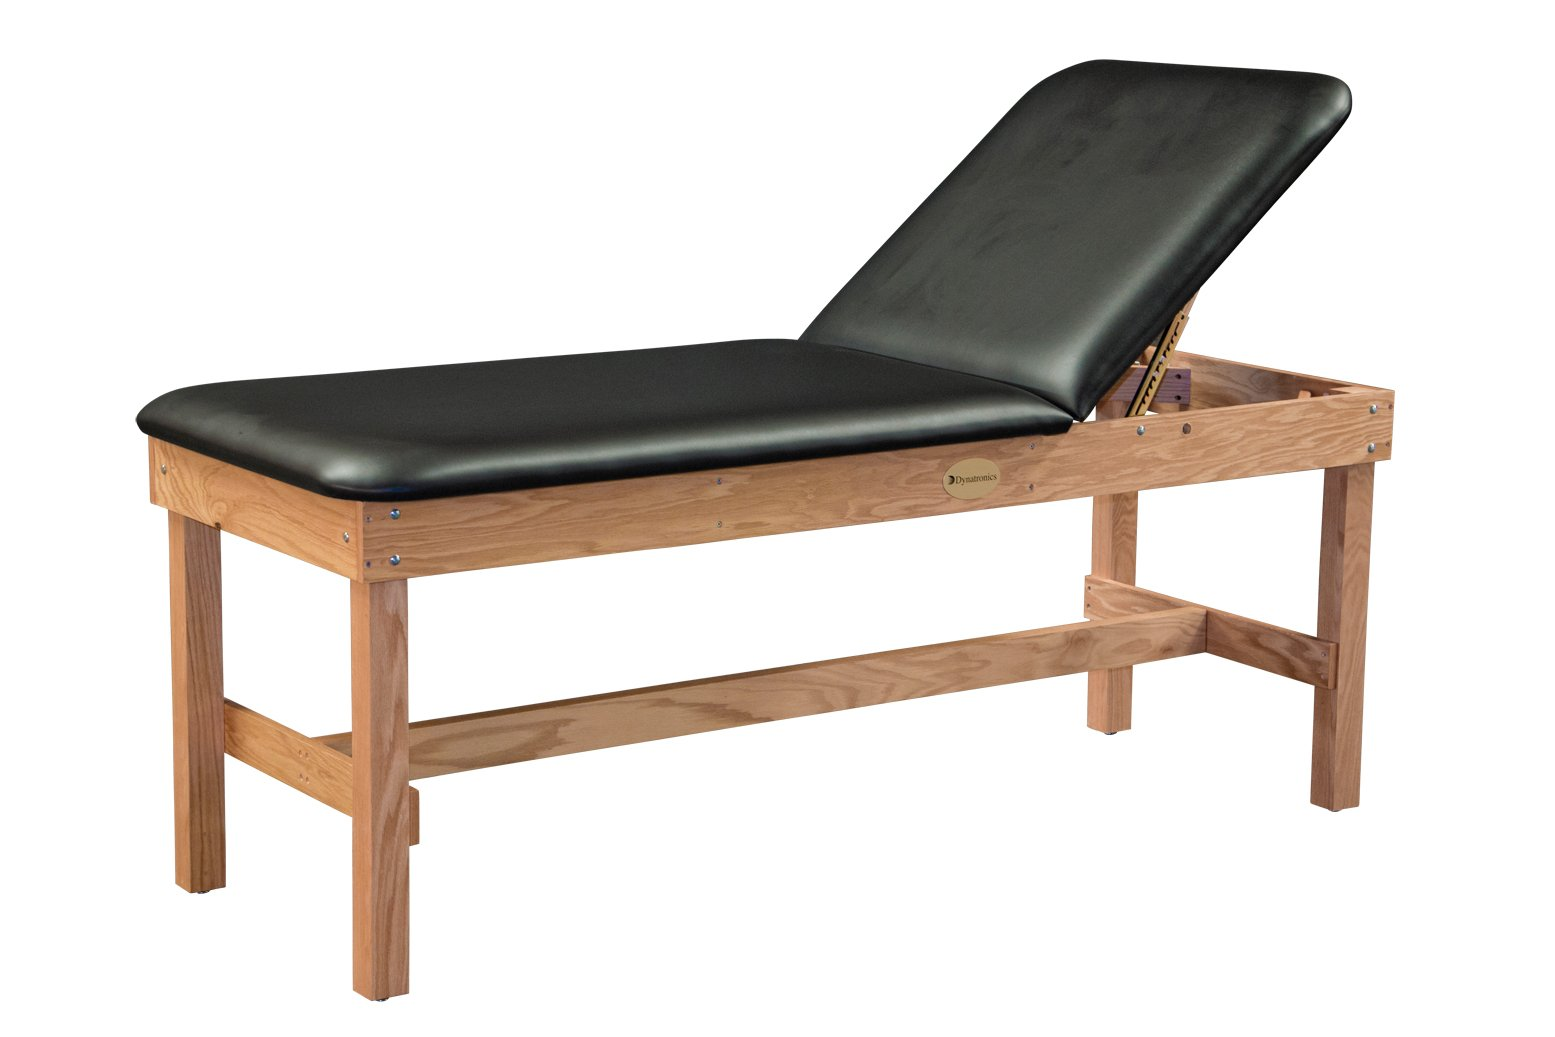 Dynatronics Solid Premium Oak H-Brace Treatment Table w/Liftback - 30'' x 78'' Black